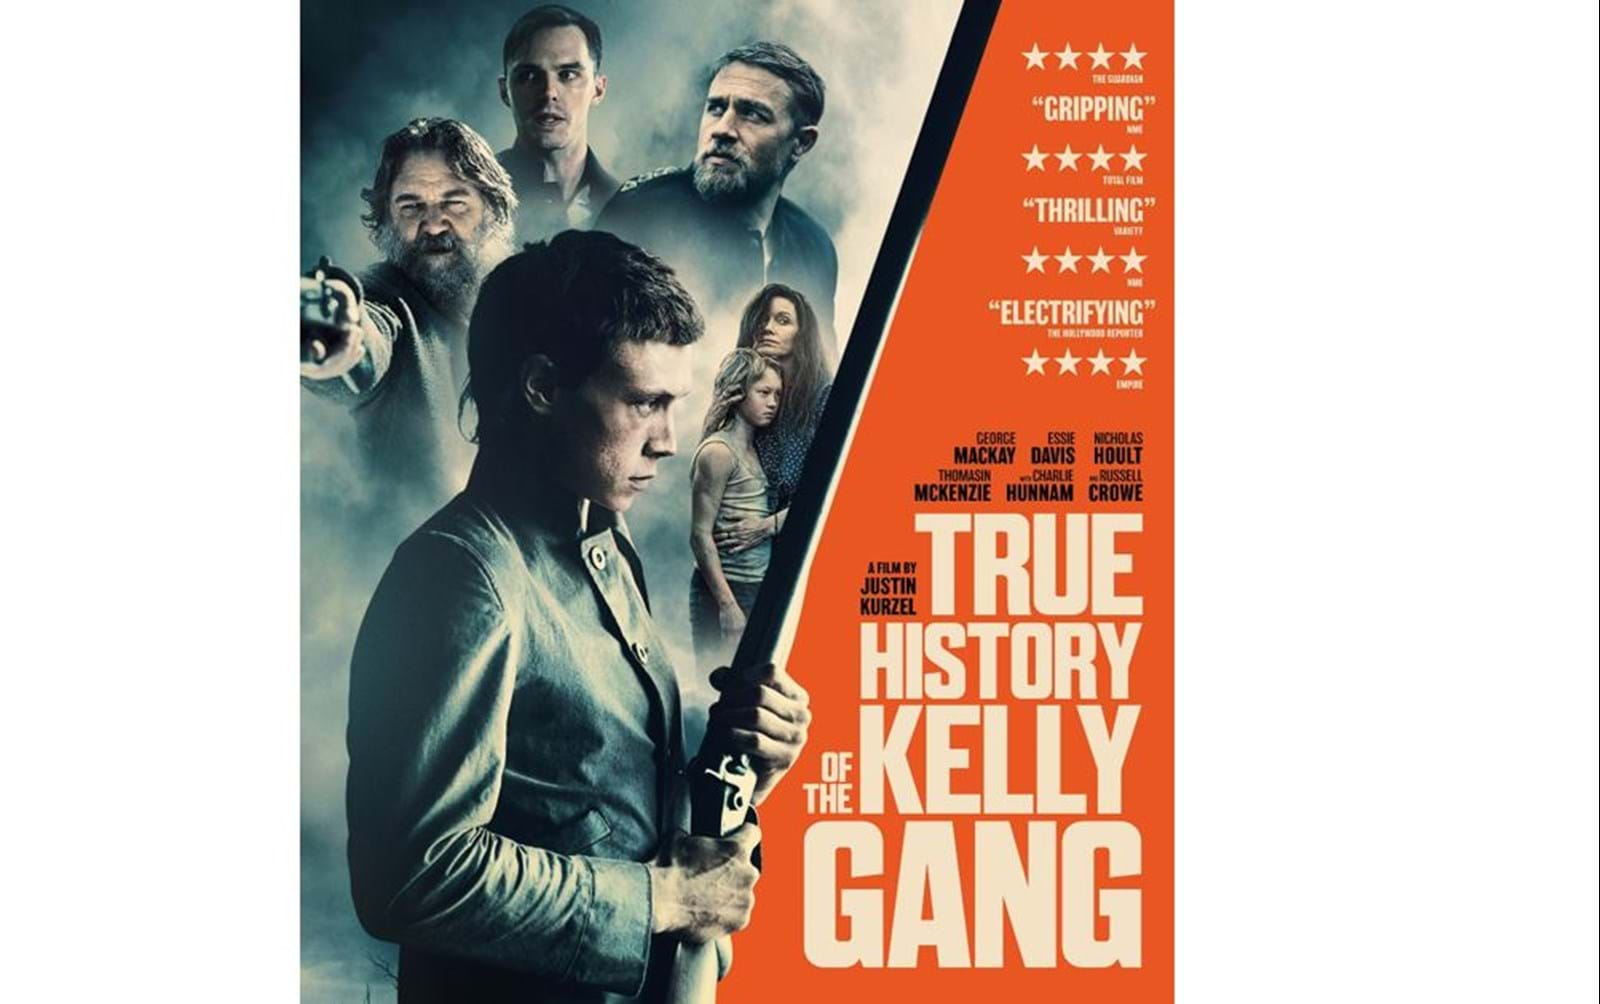 Daybreak Pictures' True History of the Kelly Gang is out released in UK cinemas today